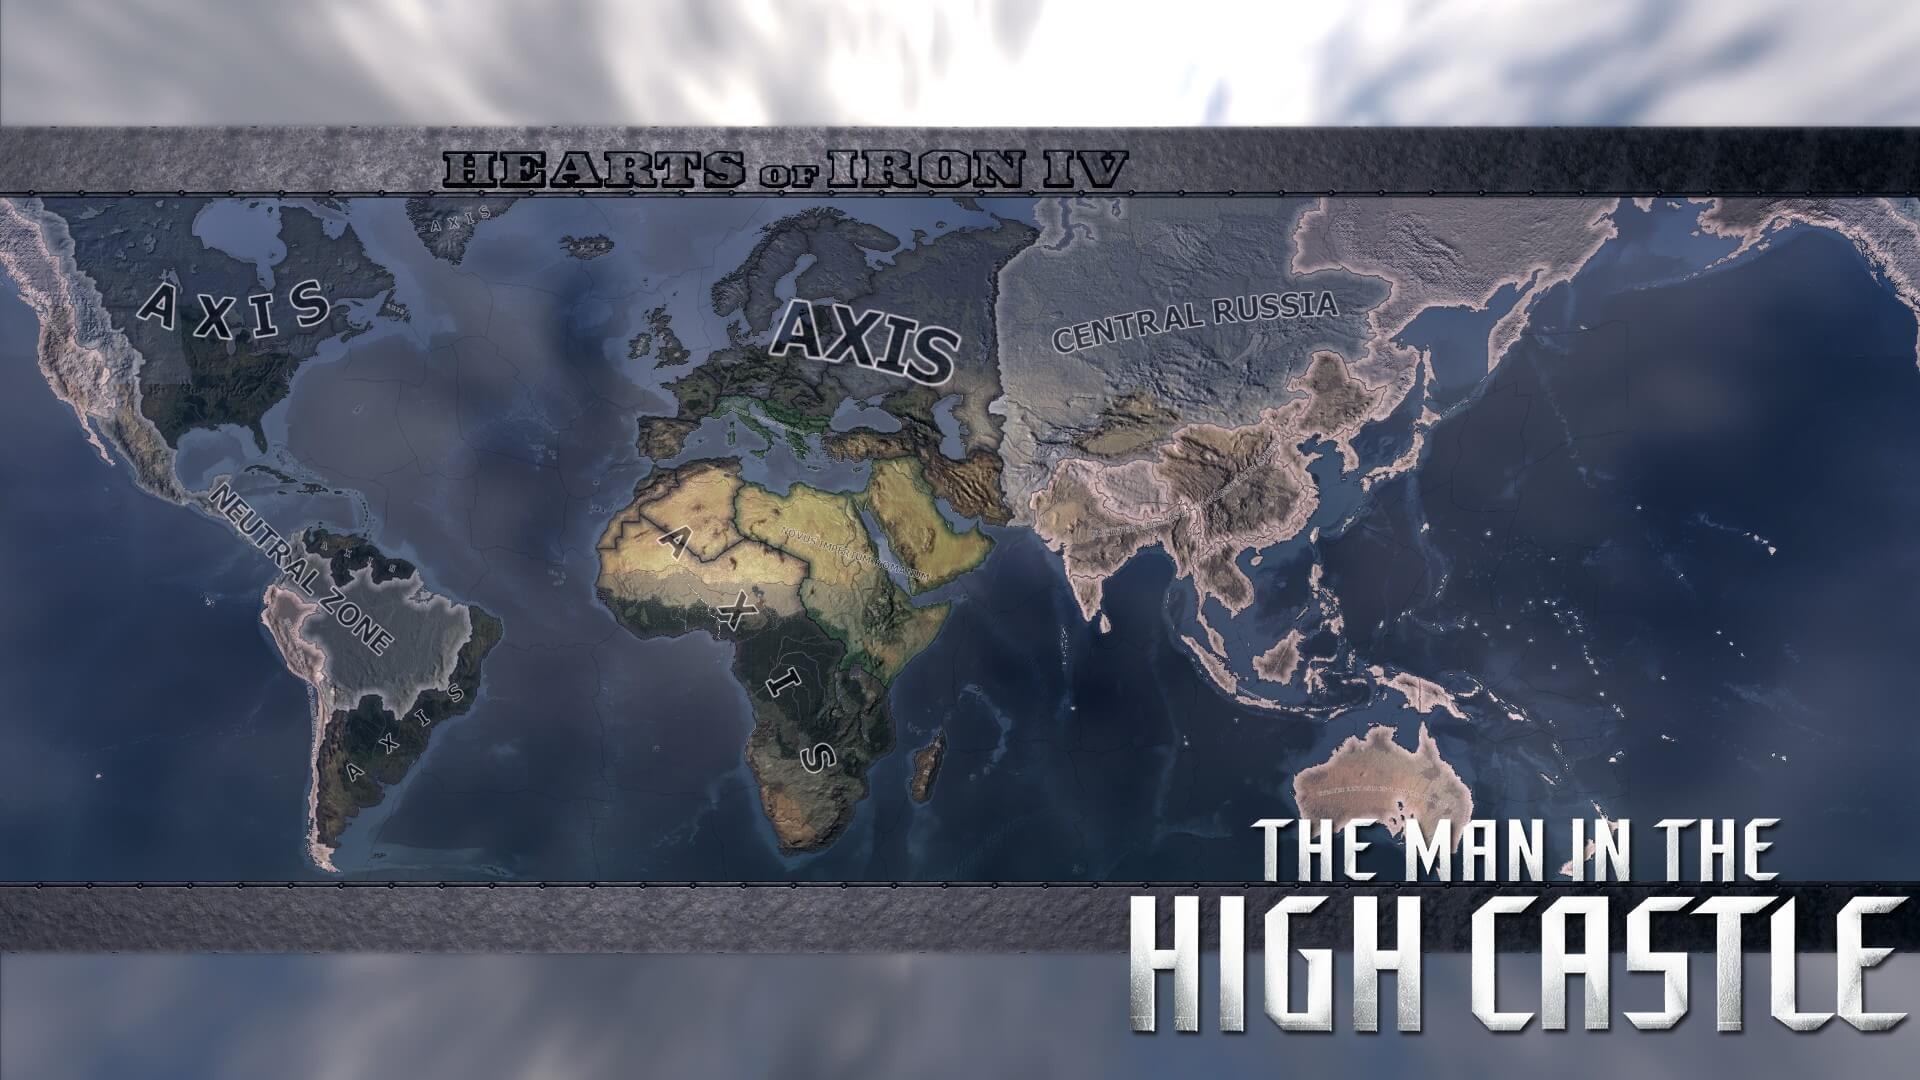 Hearts of Iron IV - The Man in the High Castle